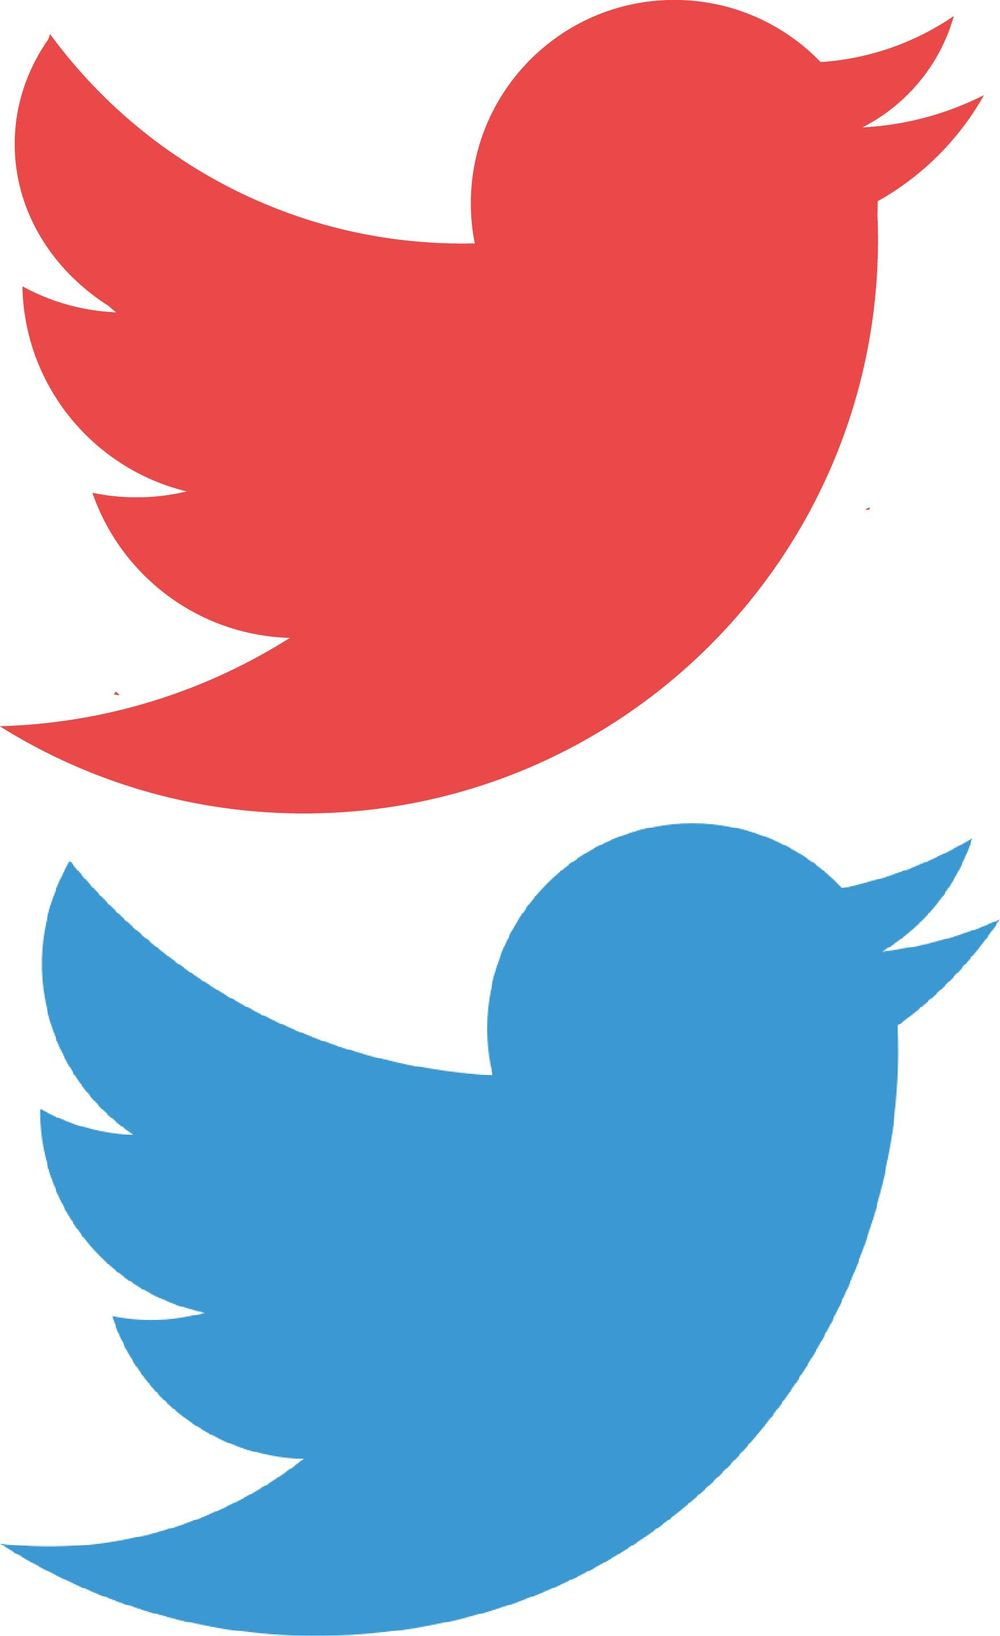 Twiter Logo. (Mine is the red one) ^_^ - image 1 - student project